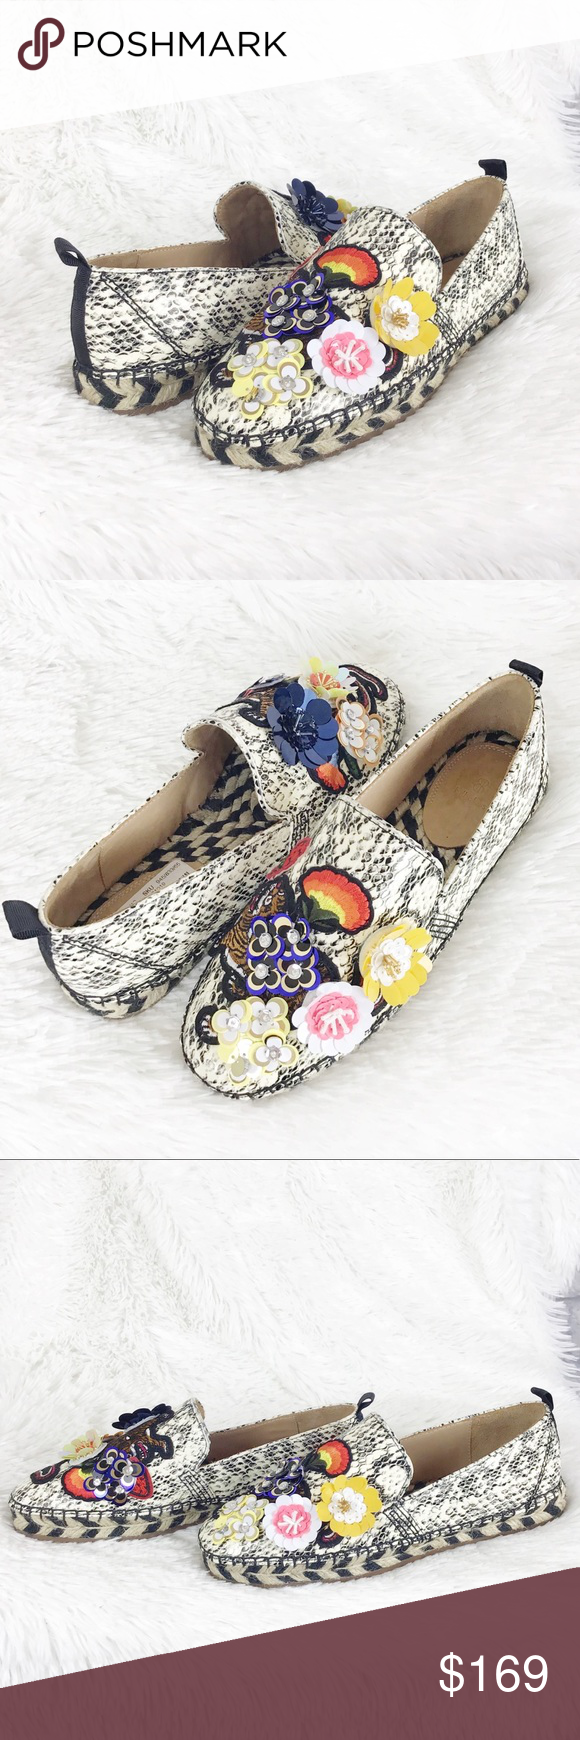 ee6f3f6cec0 NWT Anthropologie Bill Blass Sutton espadrille 7 New with department store  tags